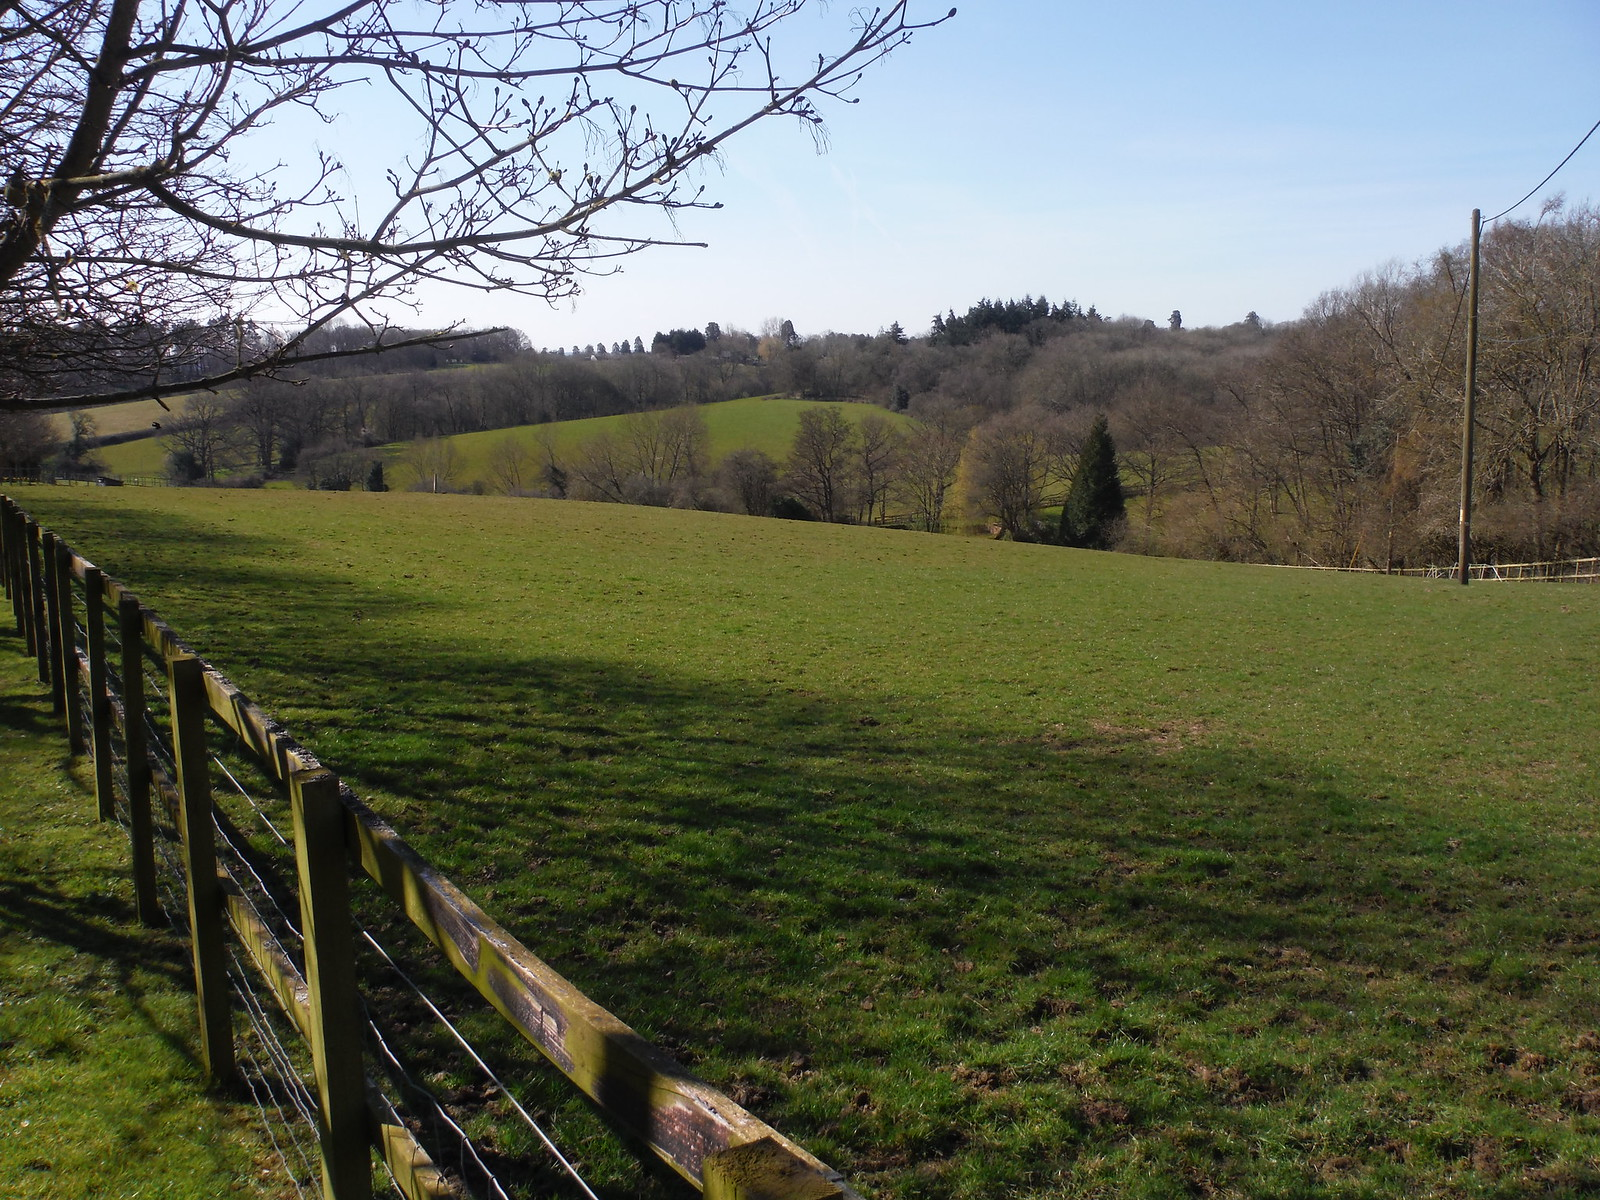 View from Oakwood Farm SWC Walk 260 Aldermaston to Woolhampton [Midgham Station] (via Frilsham)